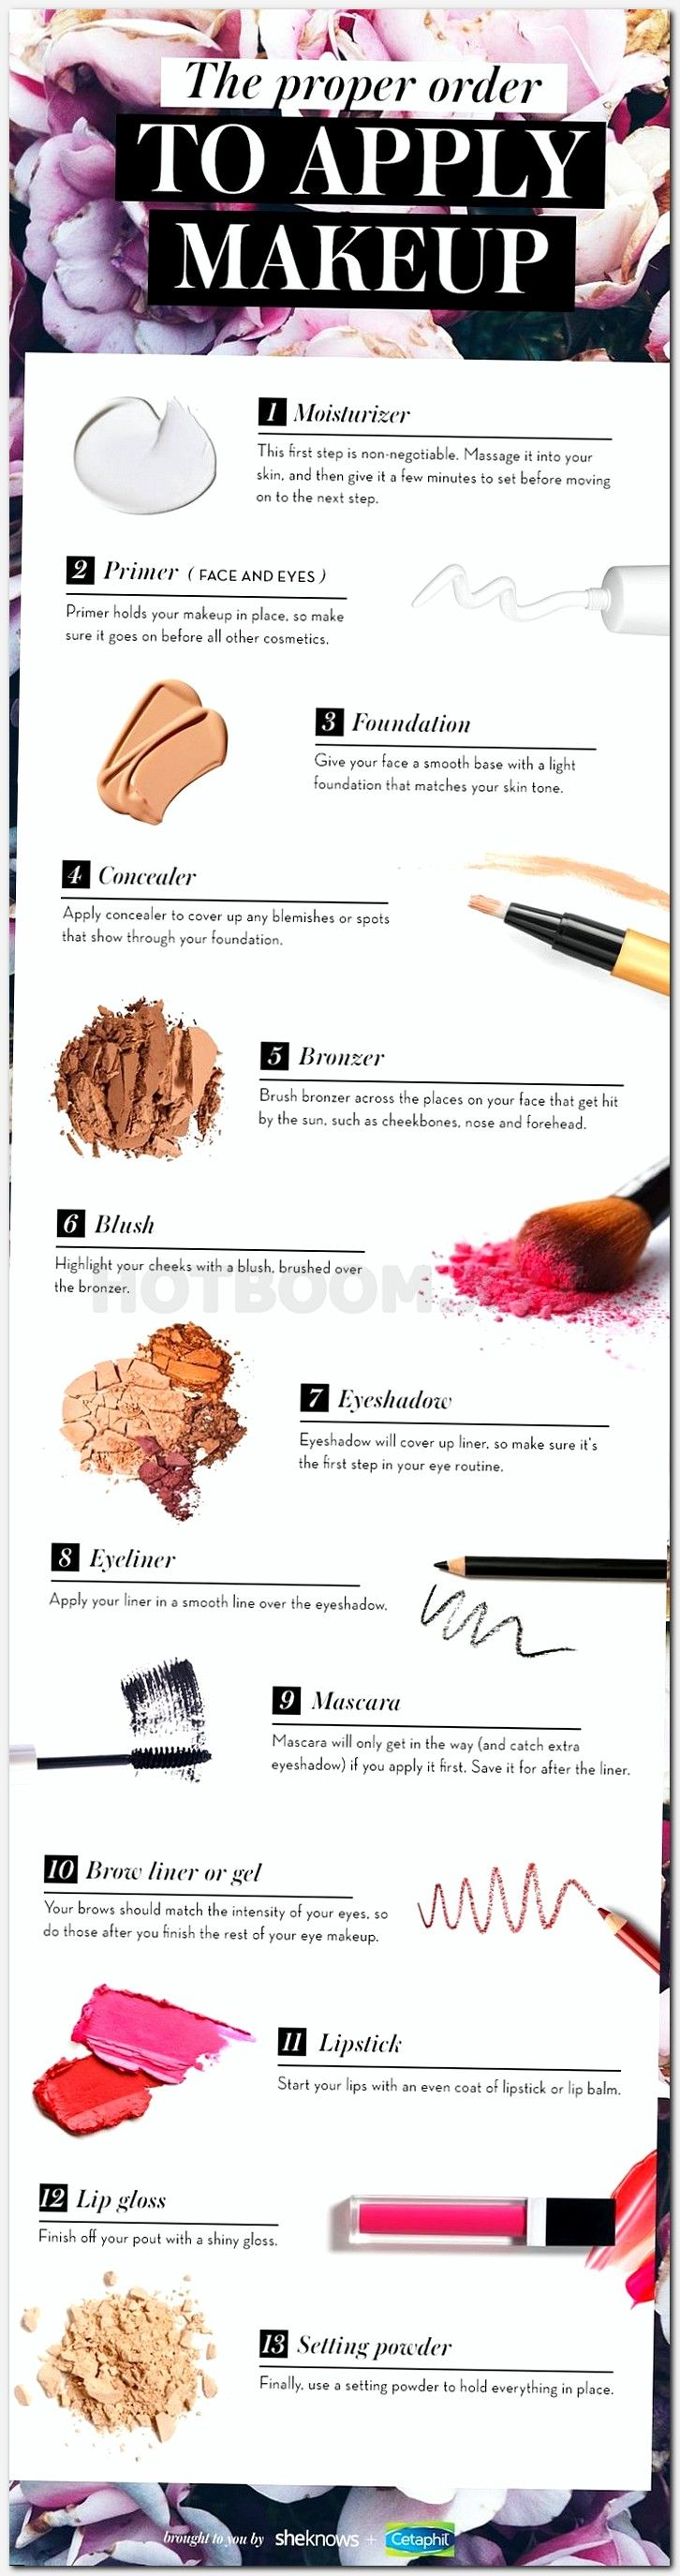 the right makeup for your skin tone, american hair & beauty supply, daily office makeup, how do makeup at home, drugstore makeup brands list, make up in wedding, makeup tools photography, jocuri make up, hair up trends 2017, hair and beauty store, mek up barbie, makeup korean, make up fashion week, online face products, best scary halloween makeup ideas, sleeping with mascara on